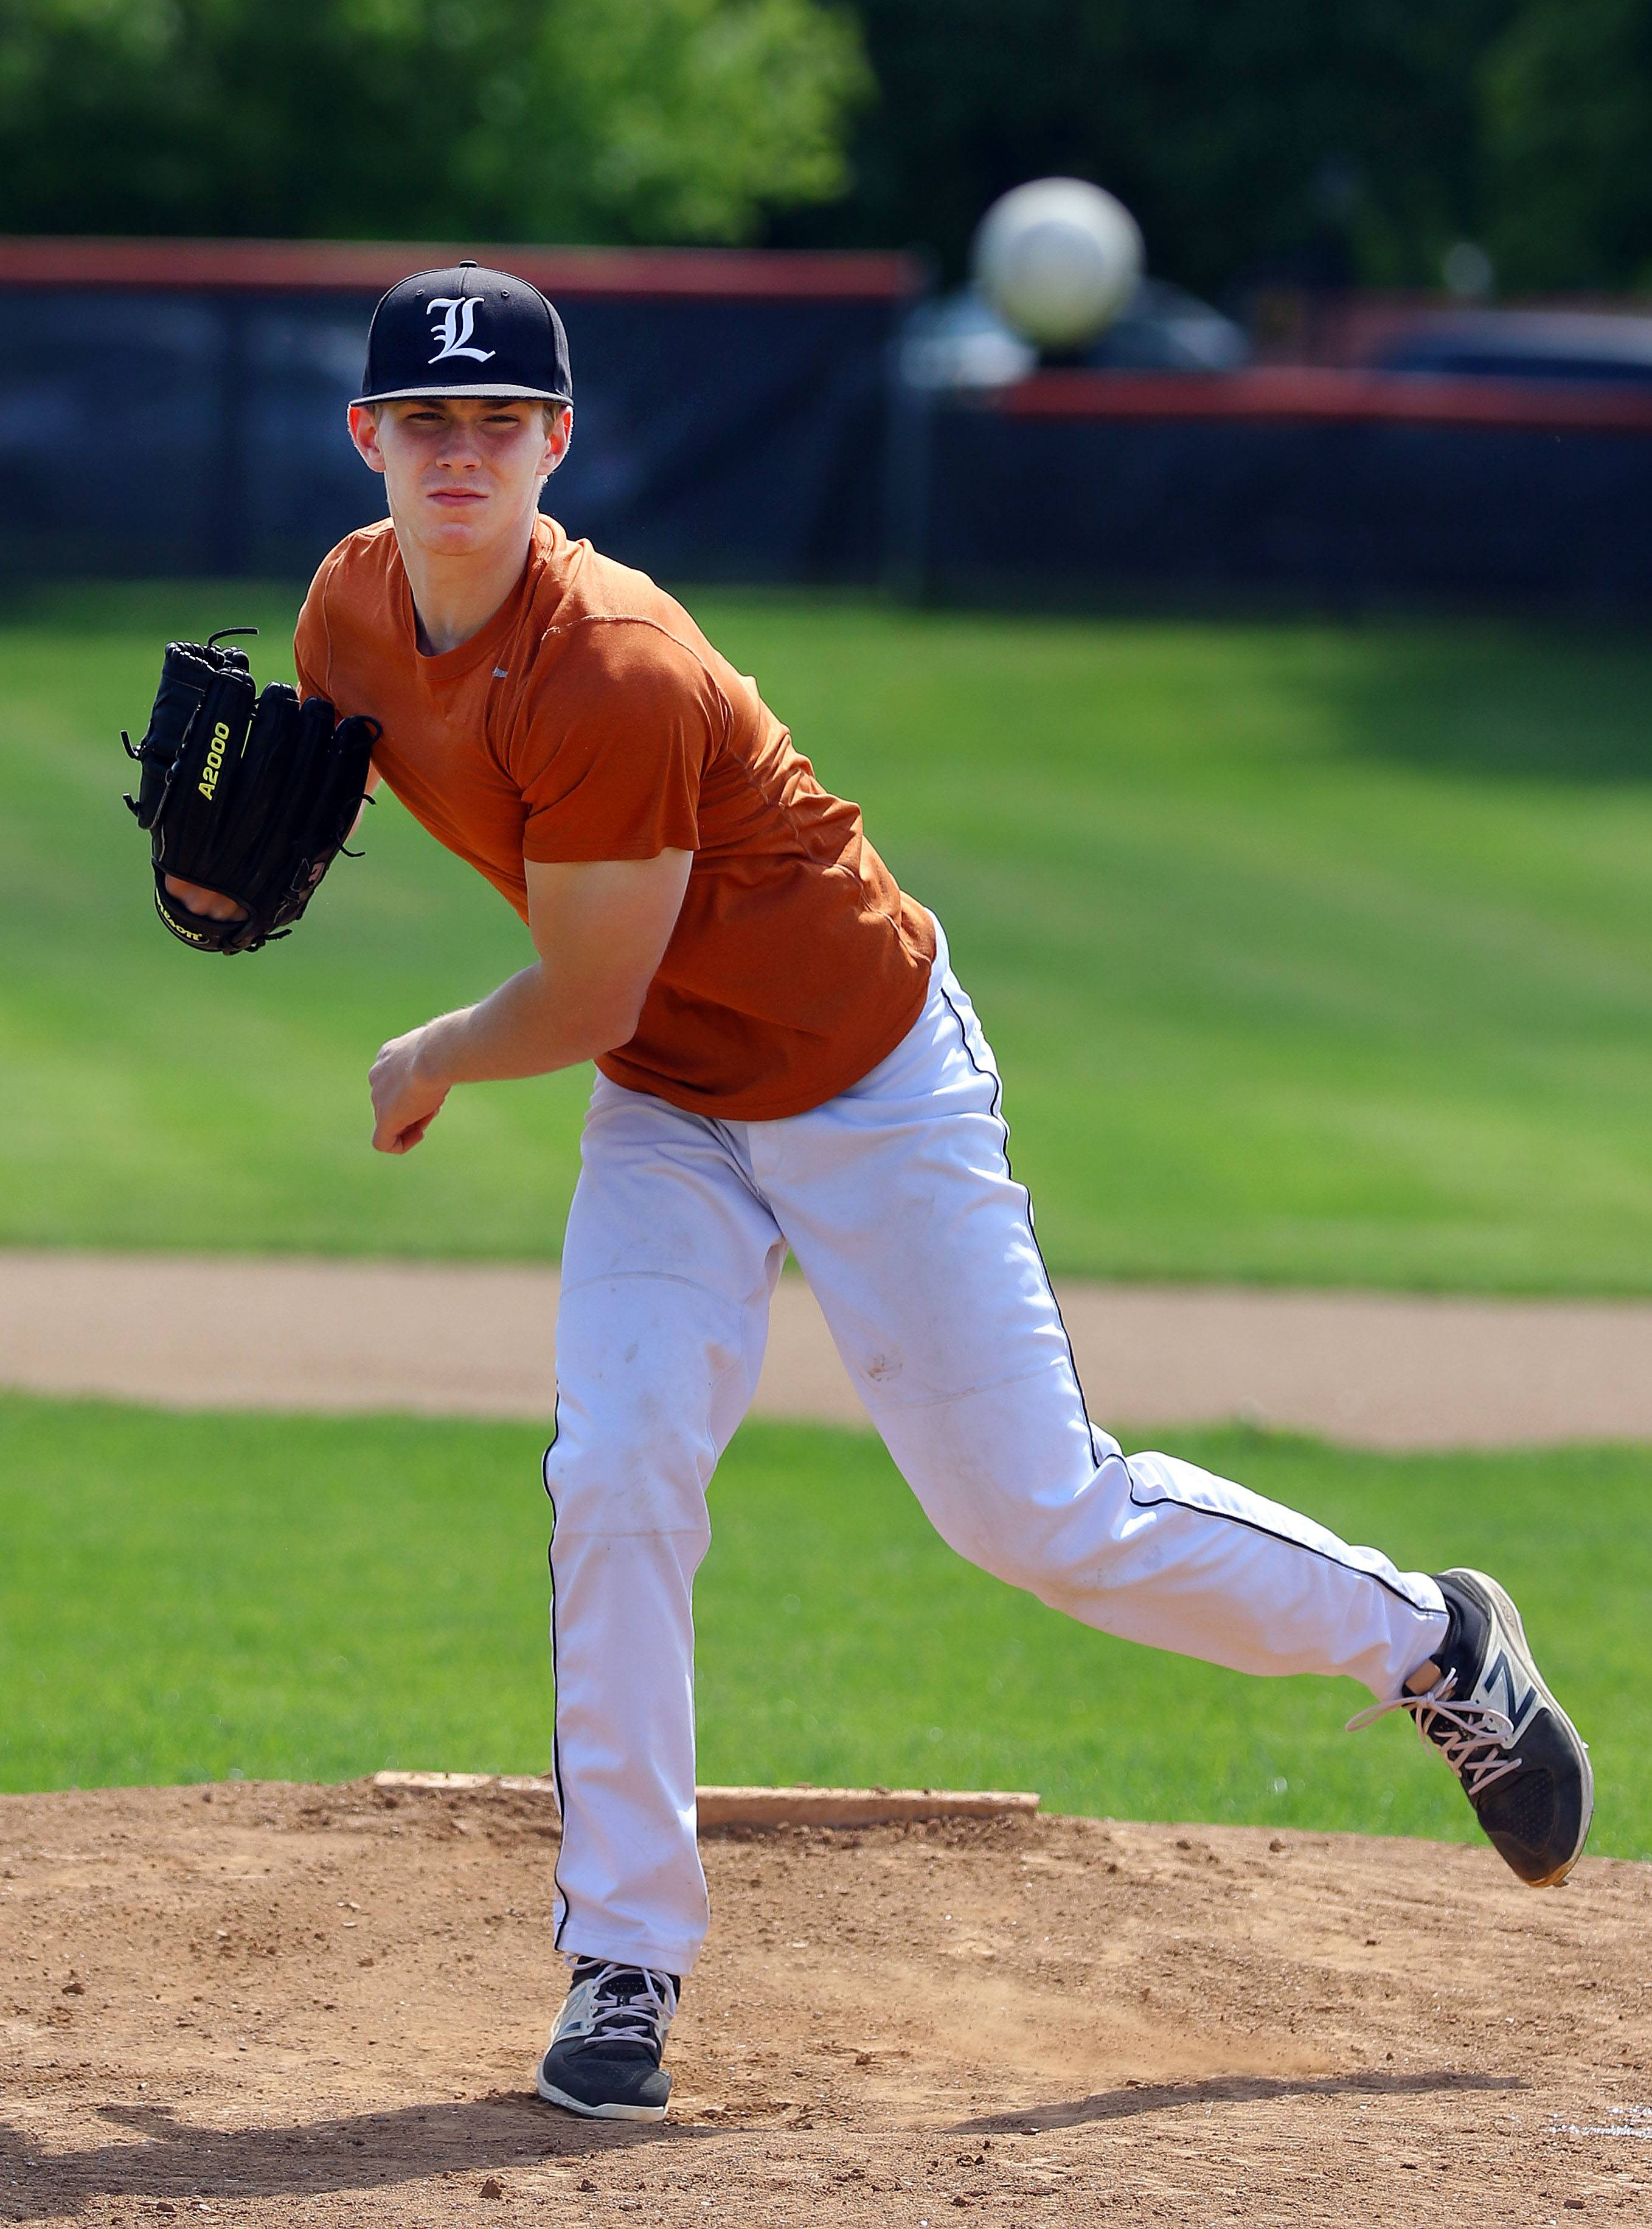 Libertyville senior Caleb Haddon pitches during practice.